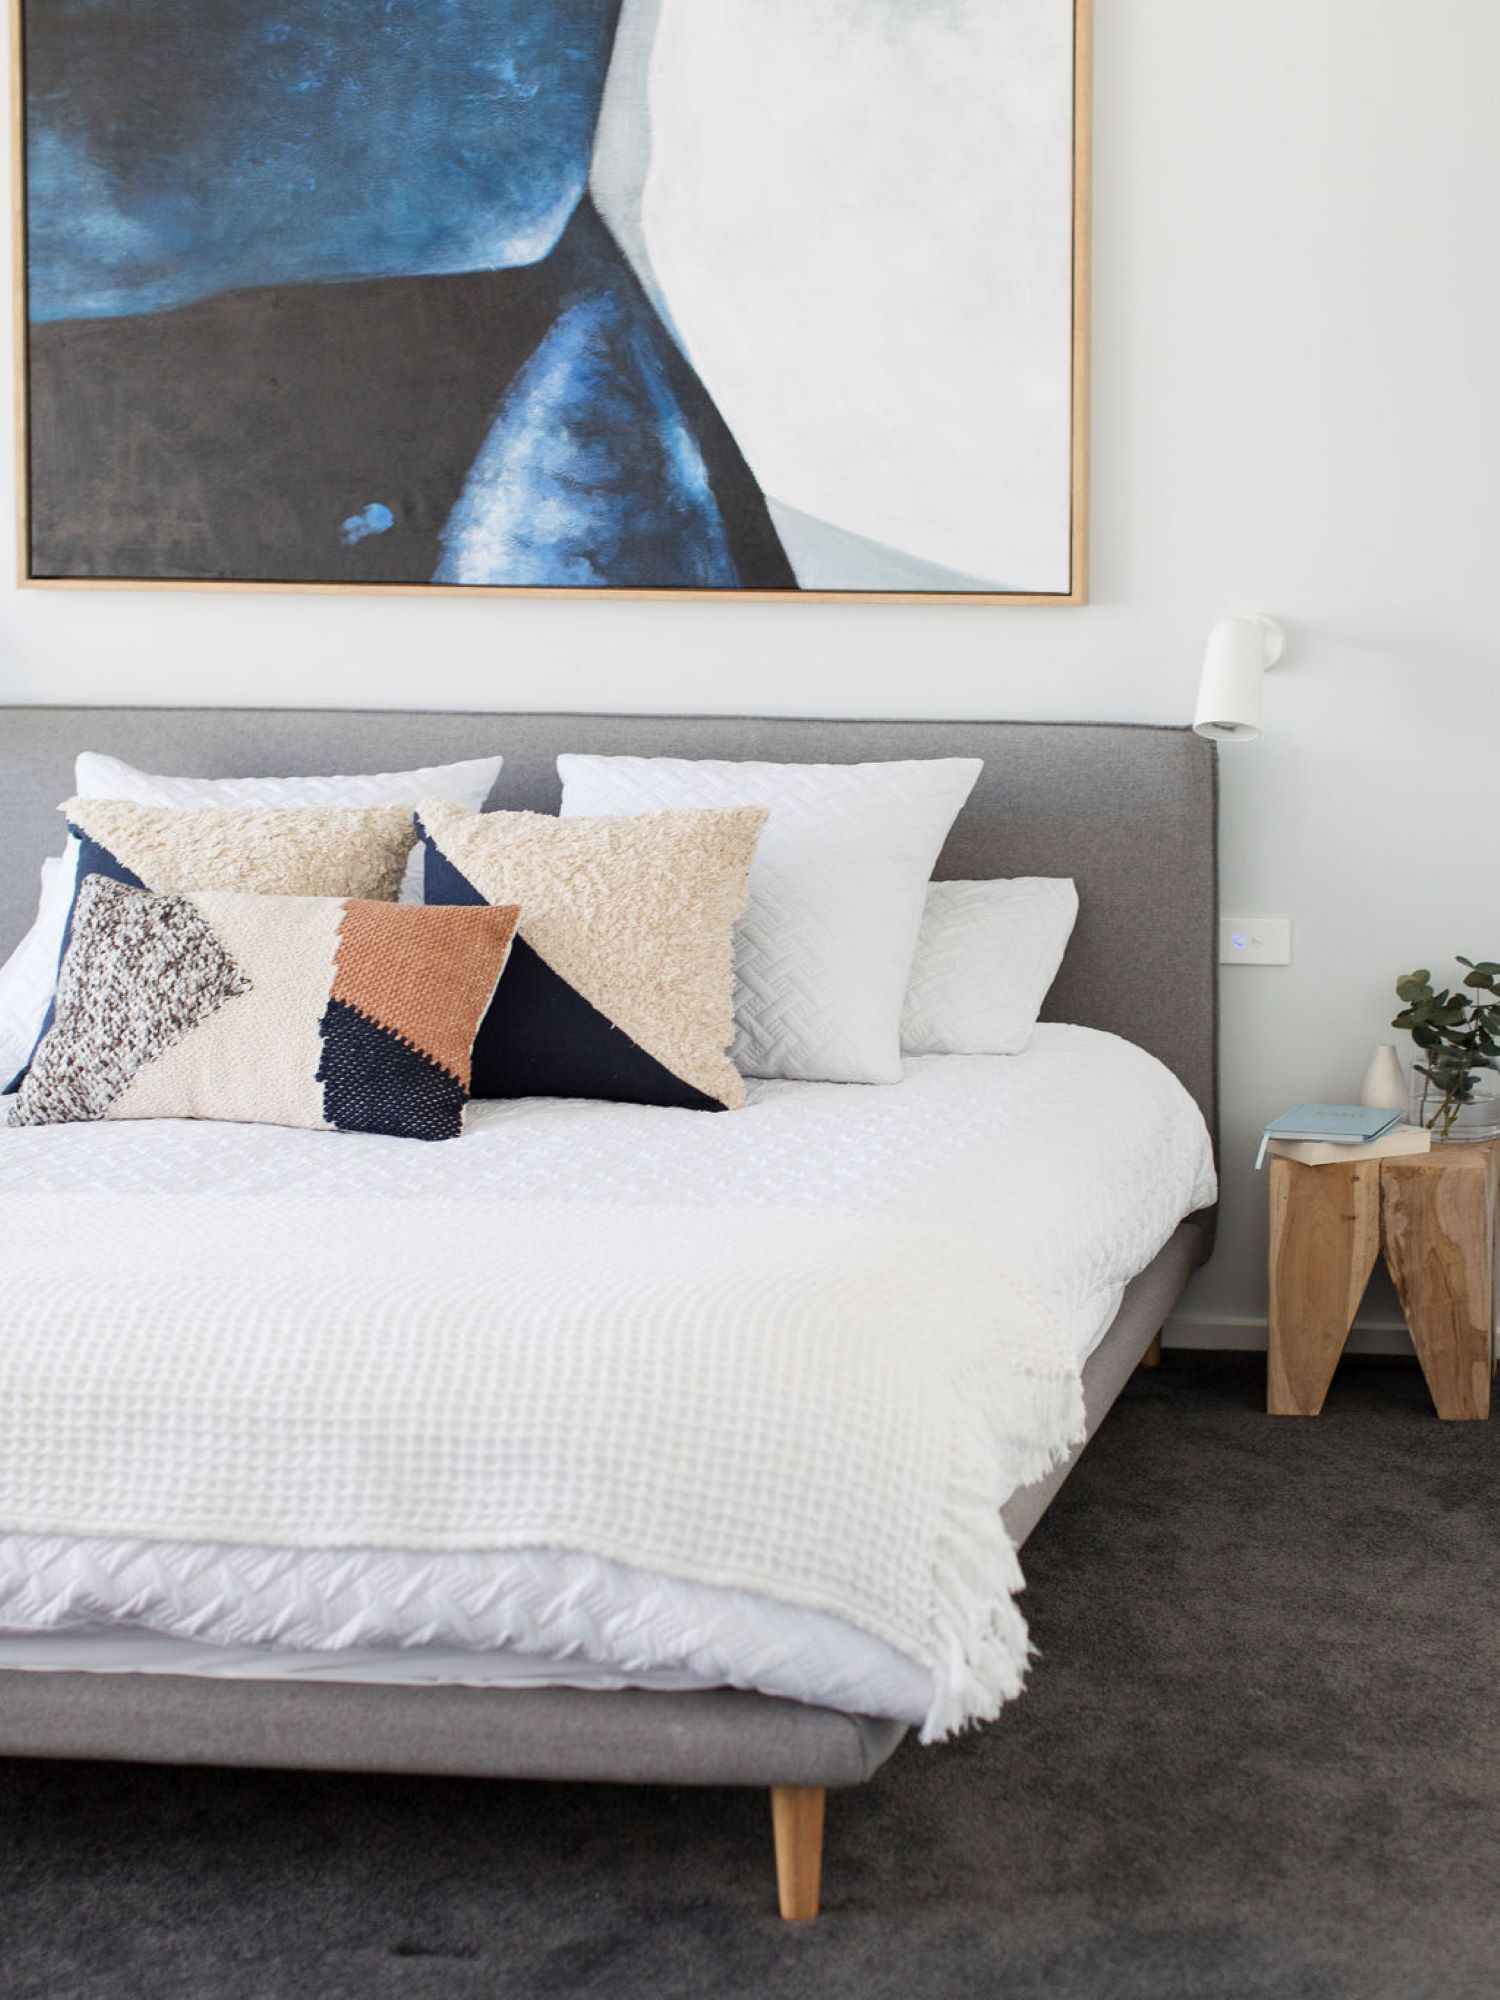 Modern Bedroom with large artwork by interior designer Michelle Canny